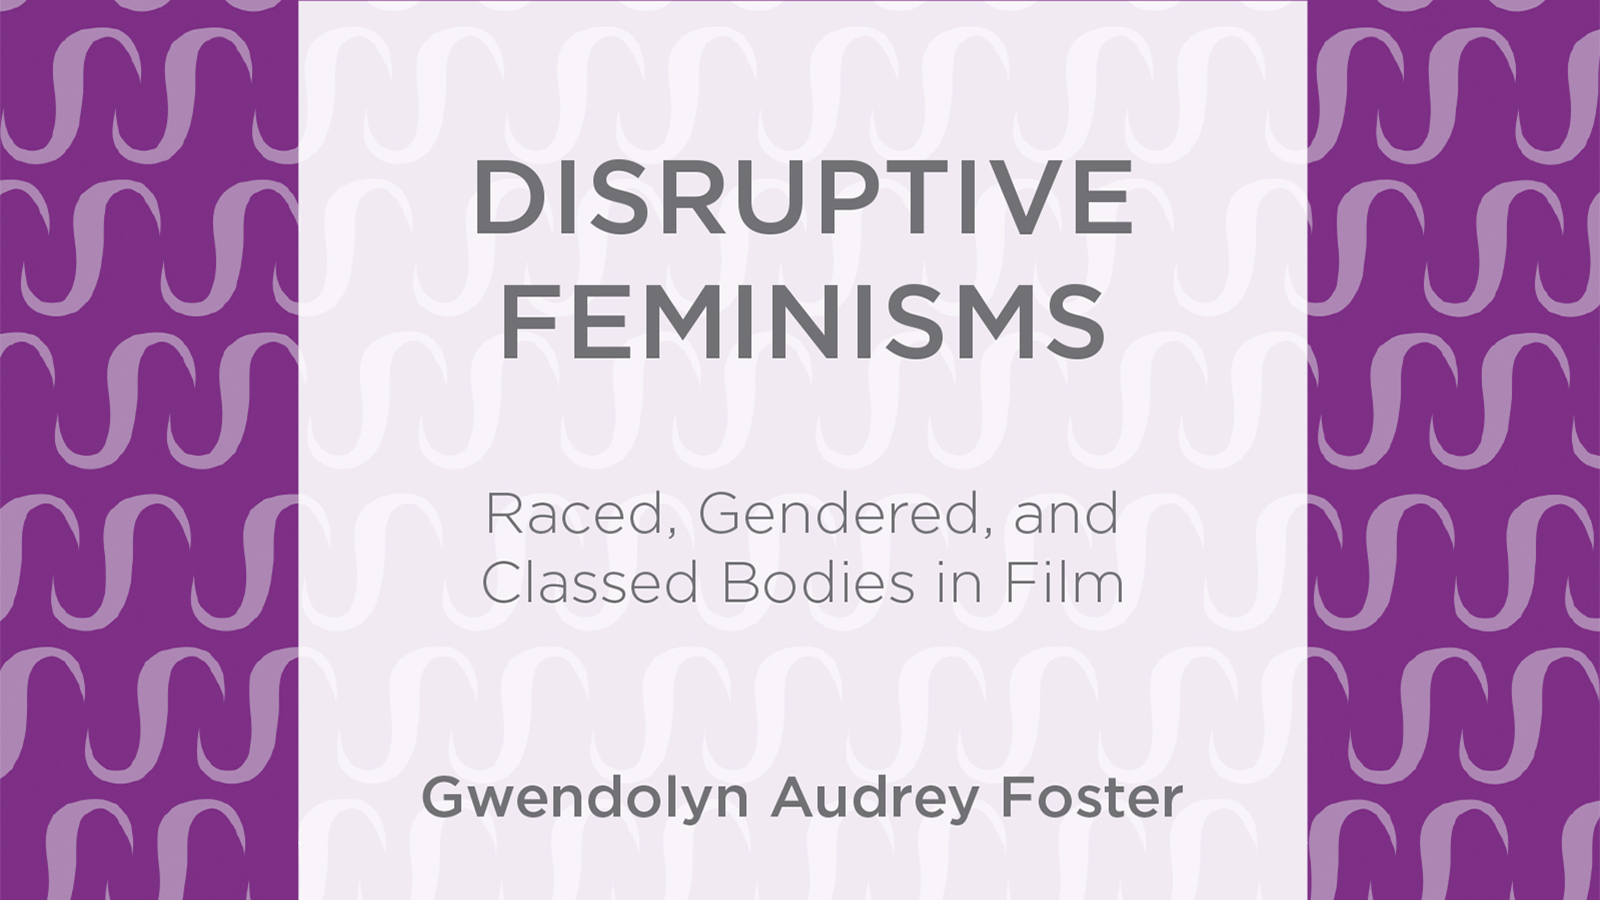 Cover image from Disruptive Feminisms by Gwendolyn Audrey Foster